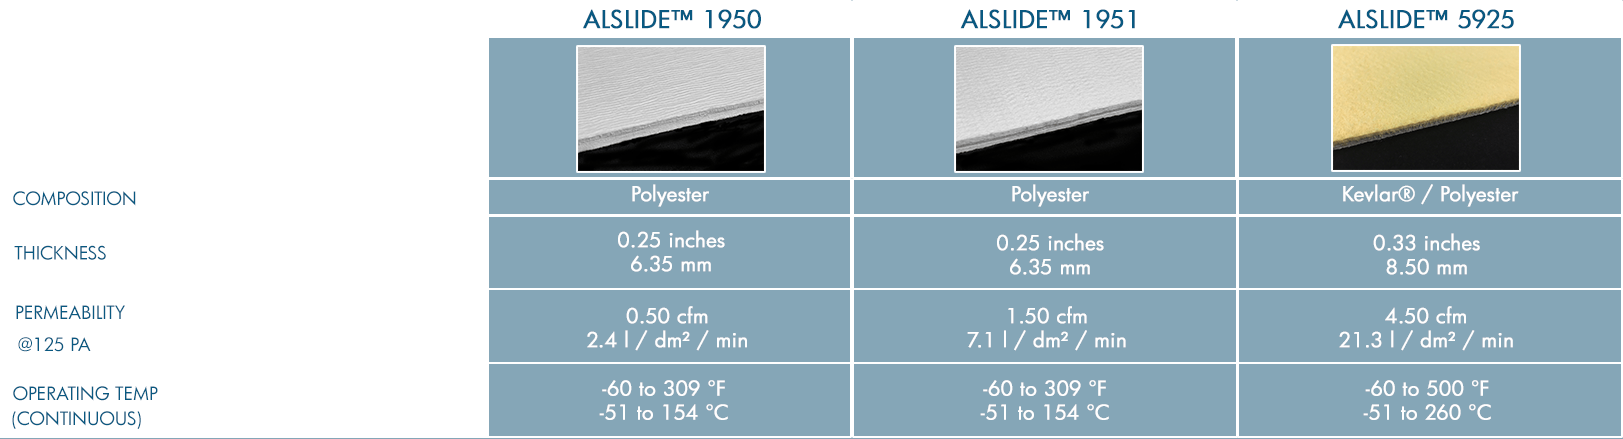 permeable air slide fabric for gravity cnoveyors, transport bulk powders and solids